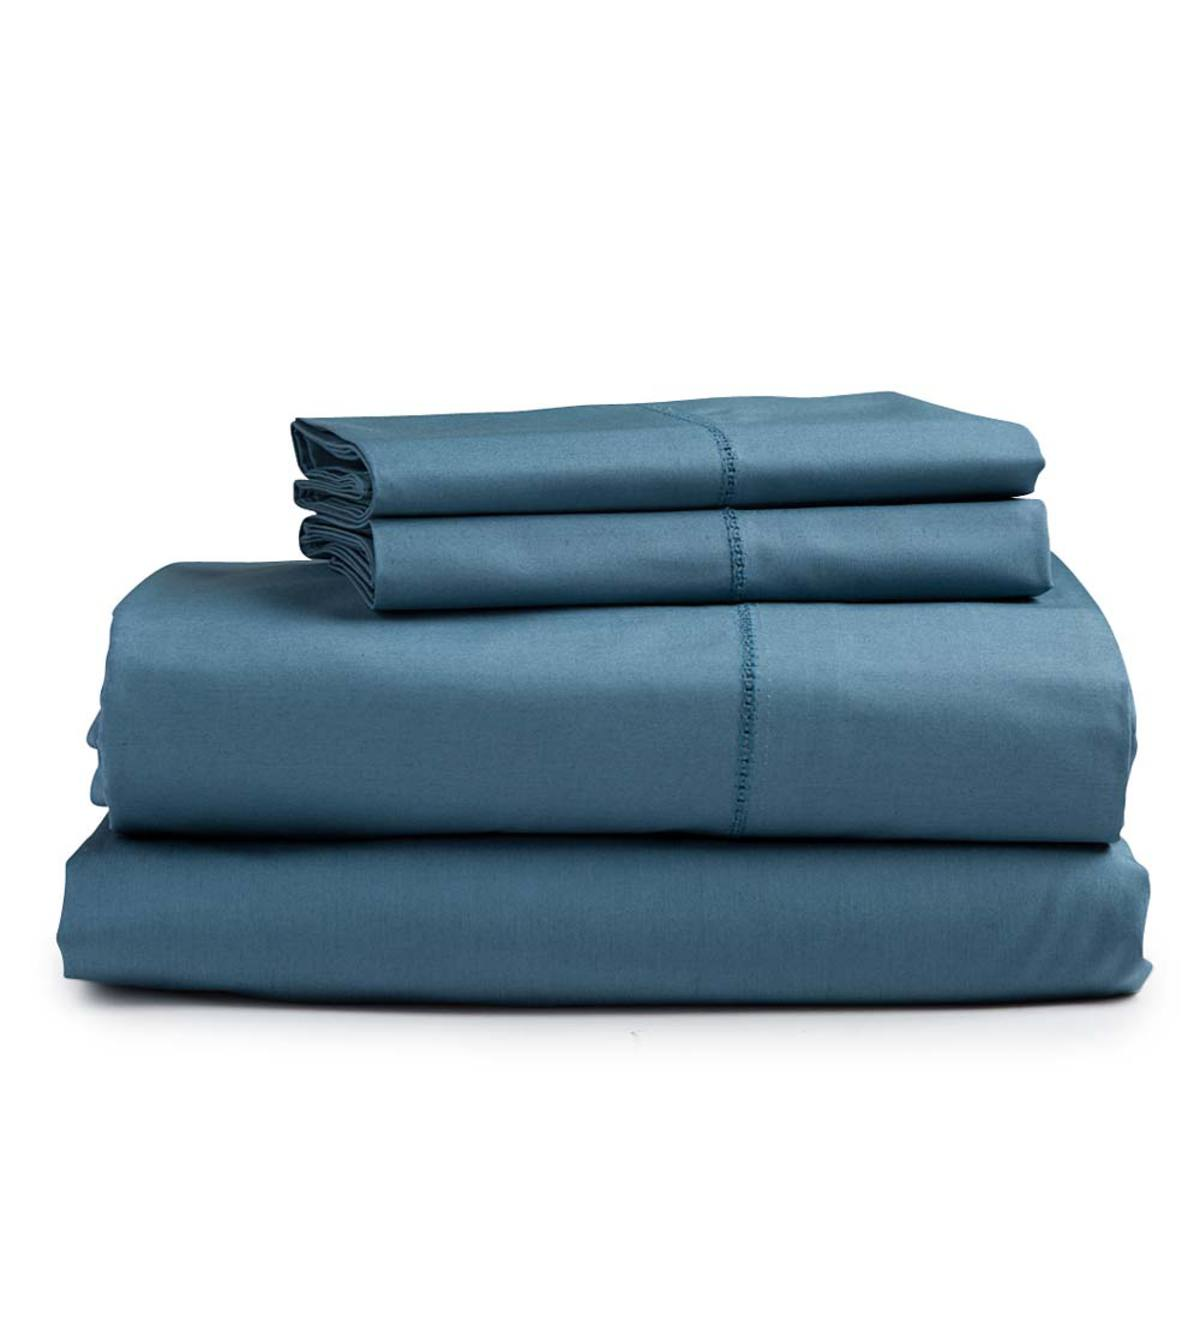 Twin Signature Cotton Percale Sheet Set - Blue Spruce